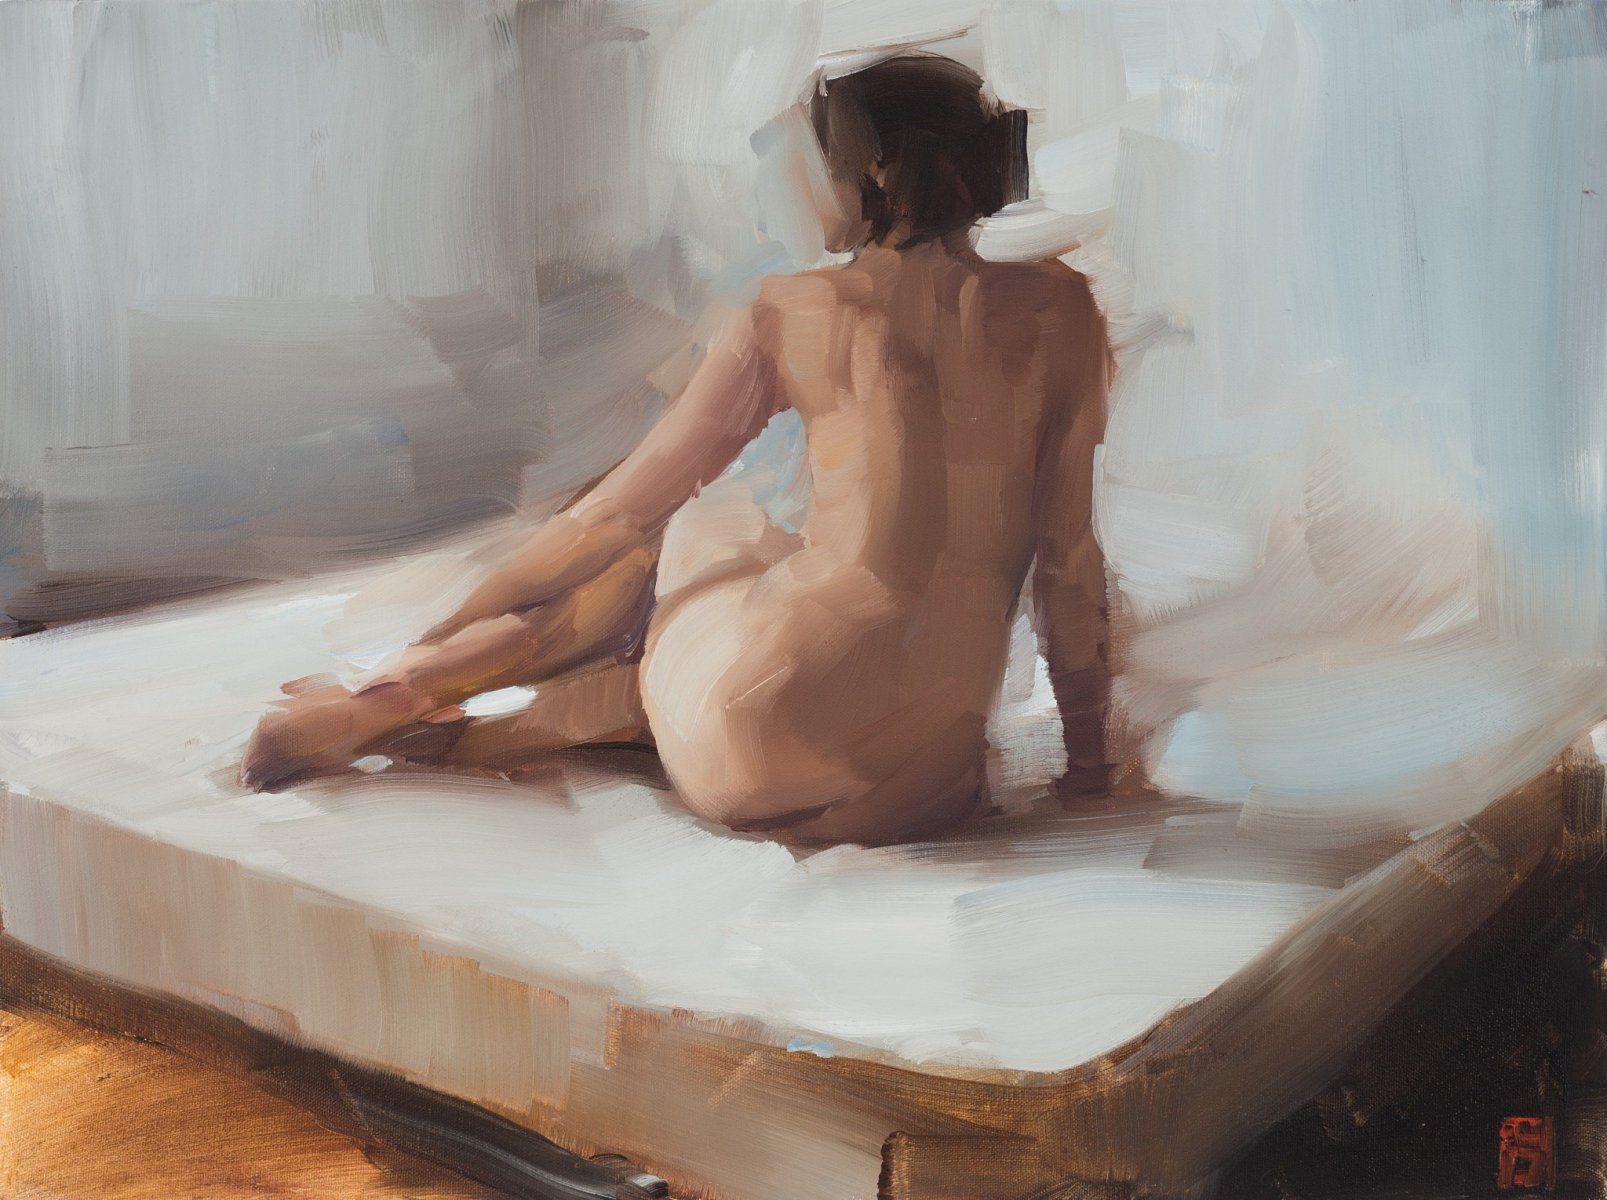 Nude on white Bed - Sasha Hartslief